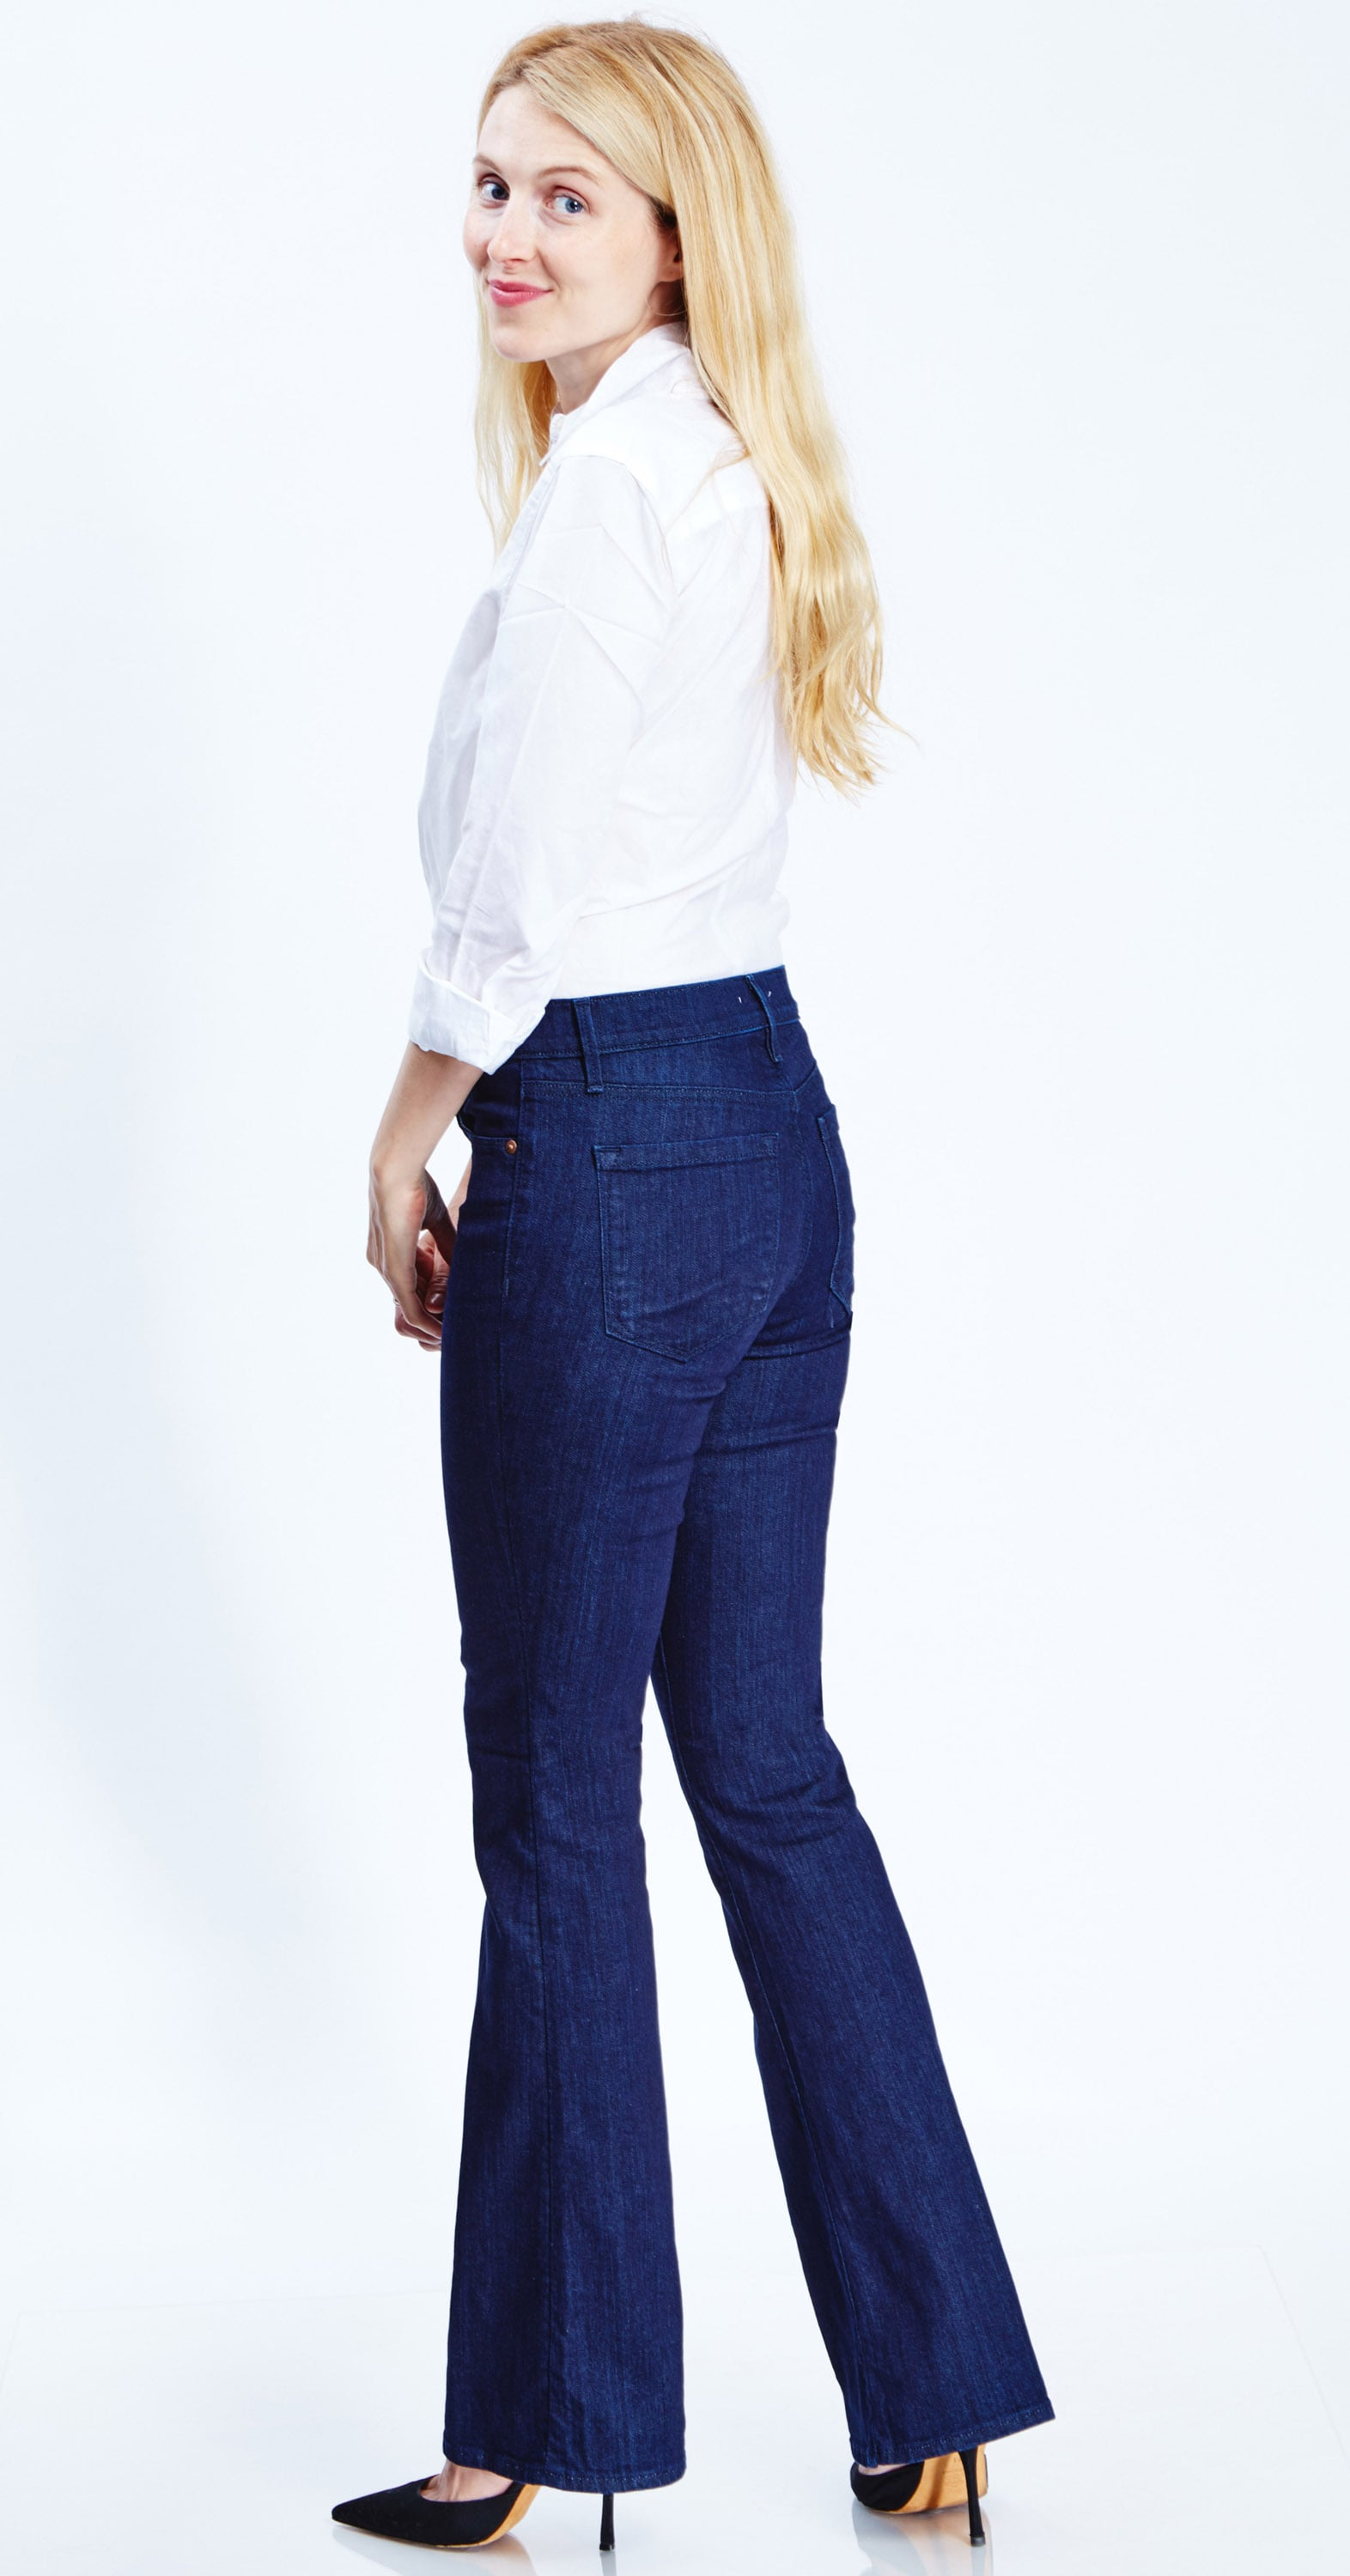 Next Jeans For Women